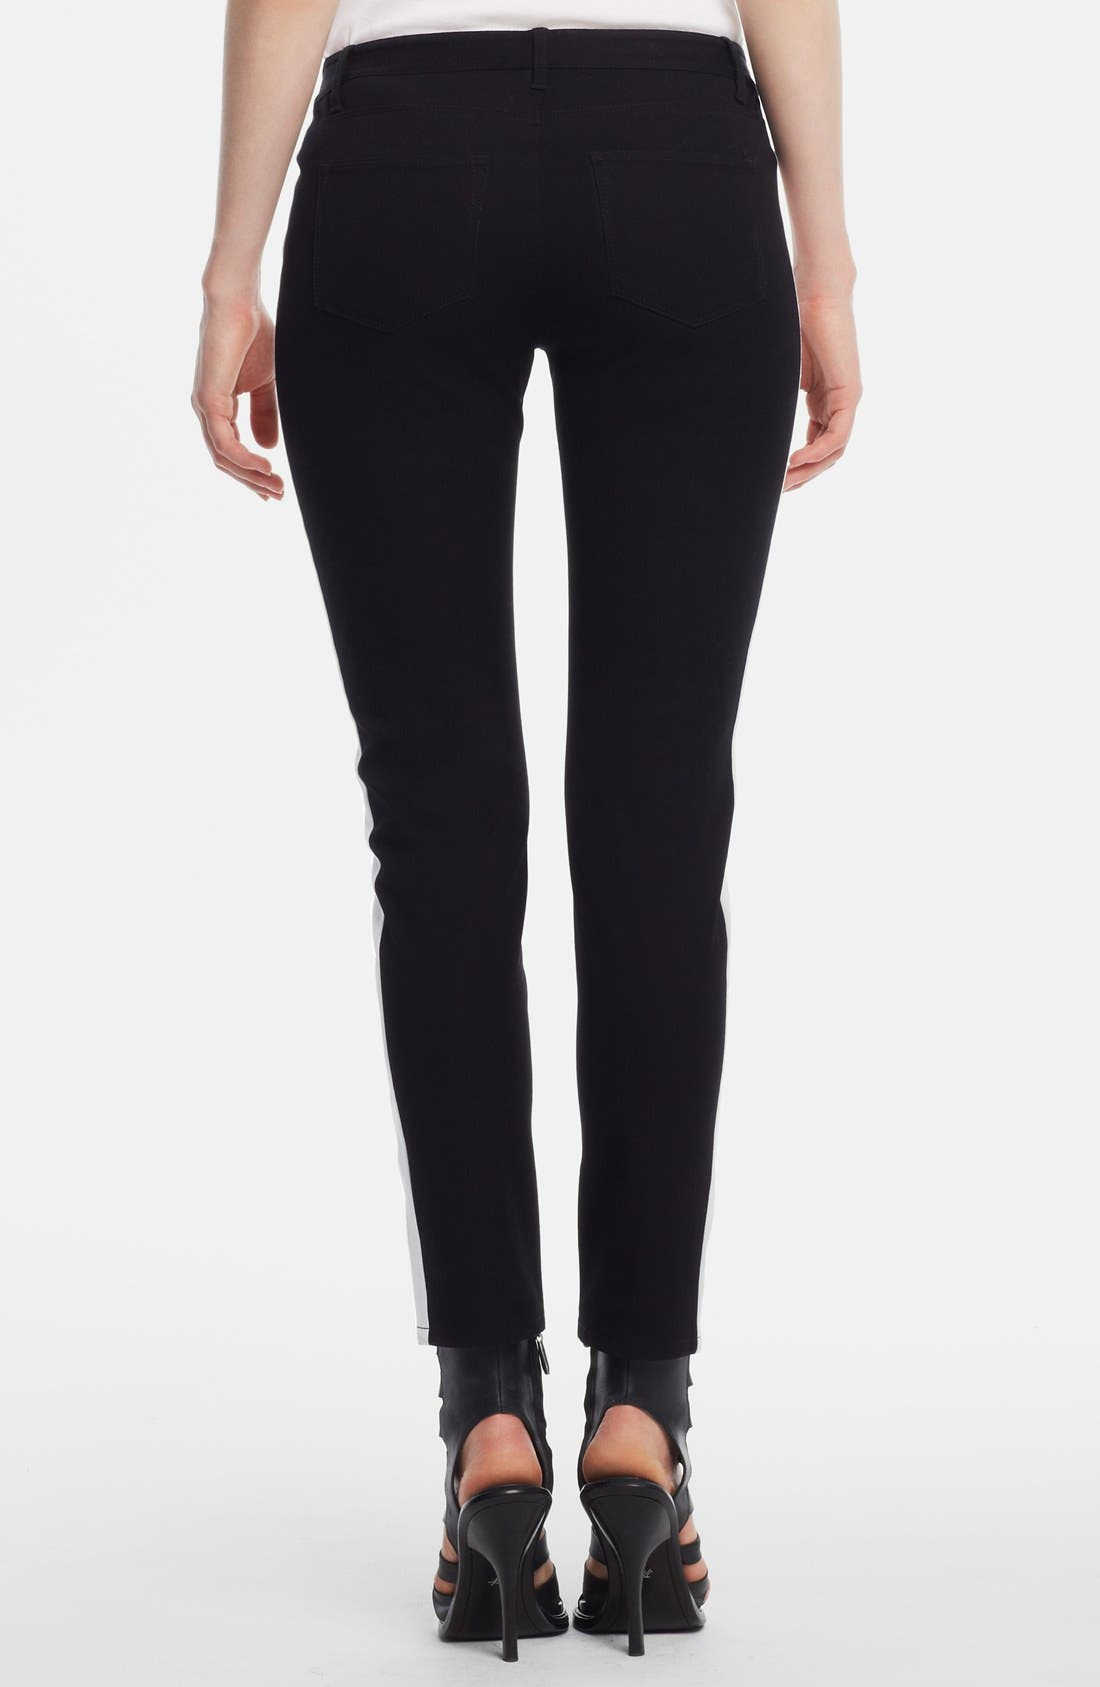 KENNETH COLE NEW YORK,                             'Jane' Colorblock Pants,                             Alternate thumbnail 2, color,                             006